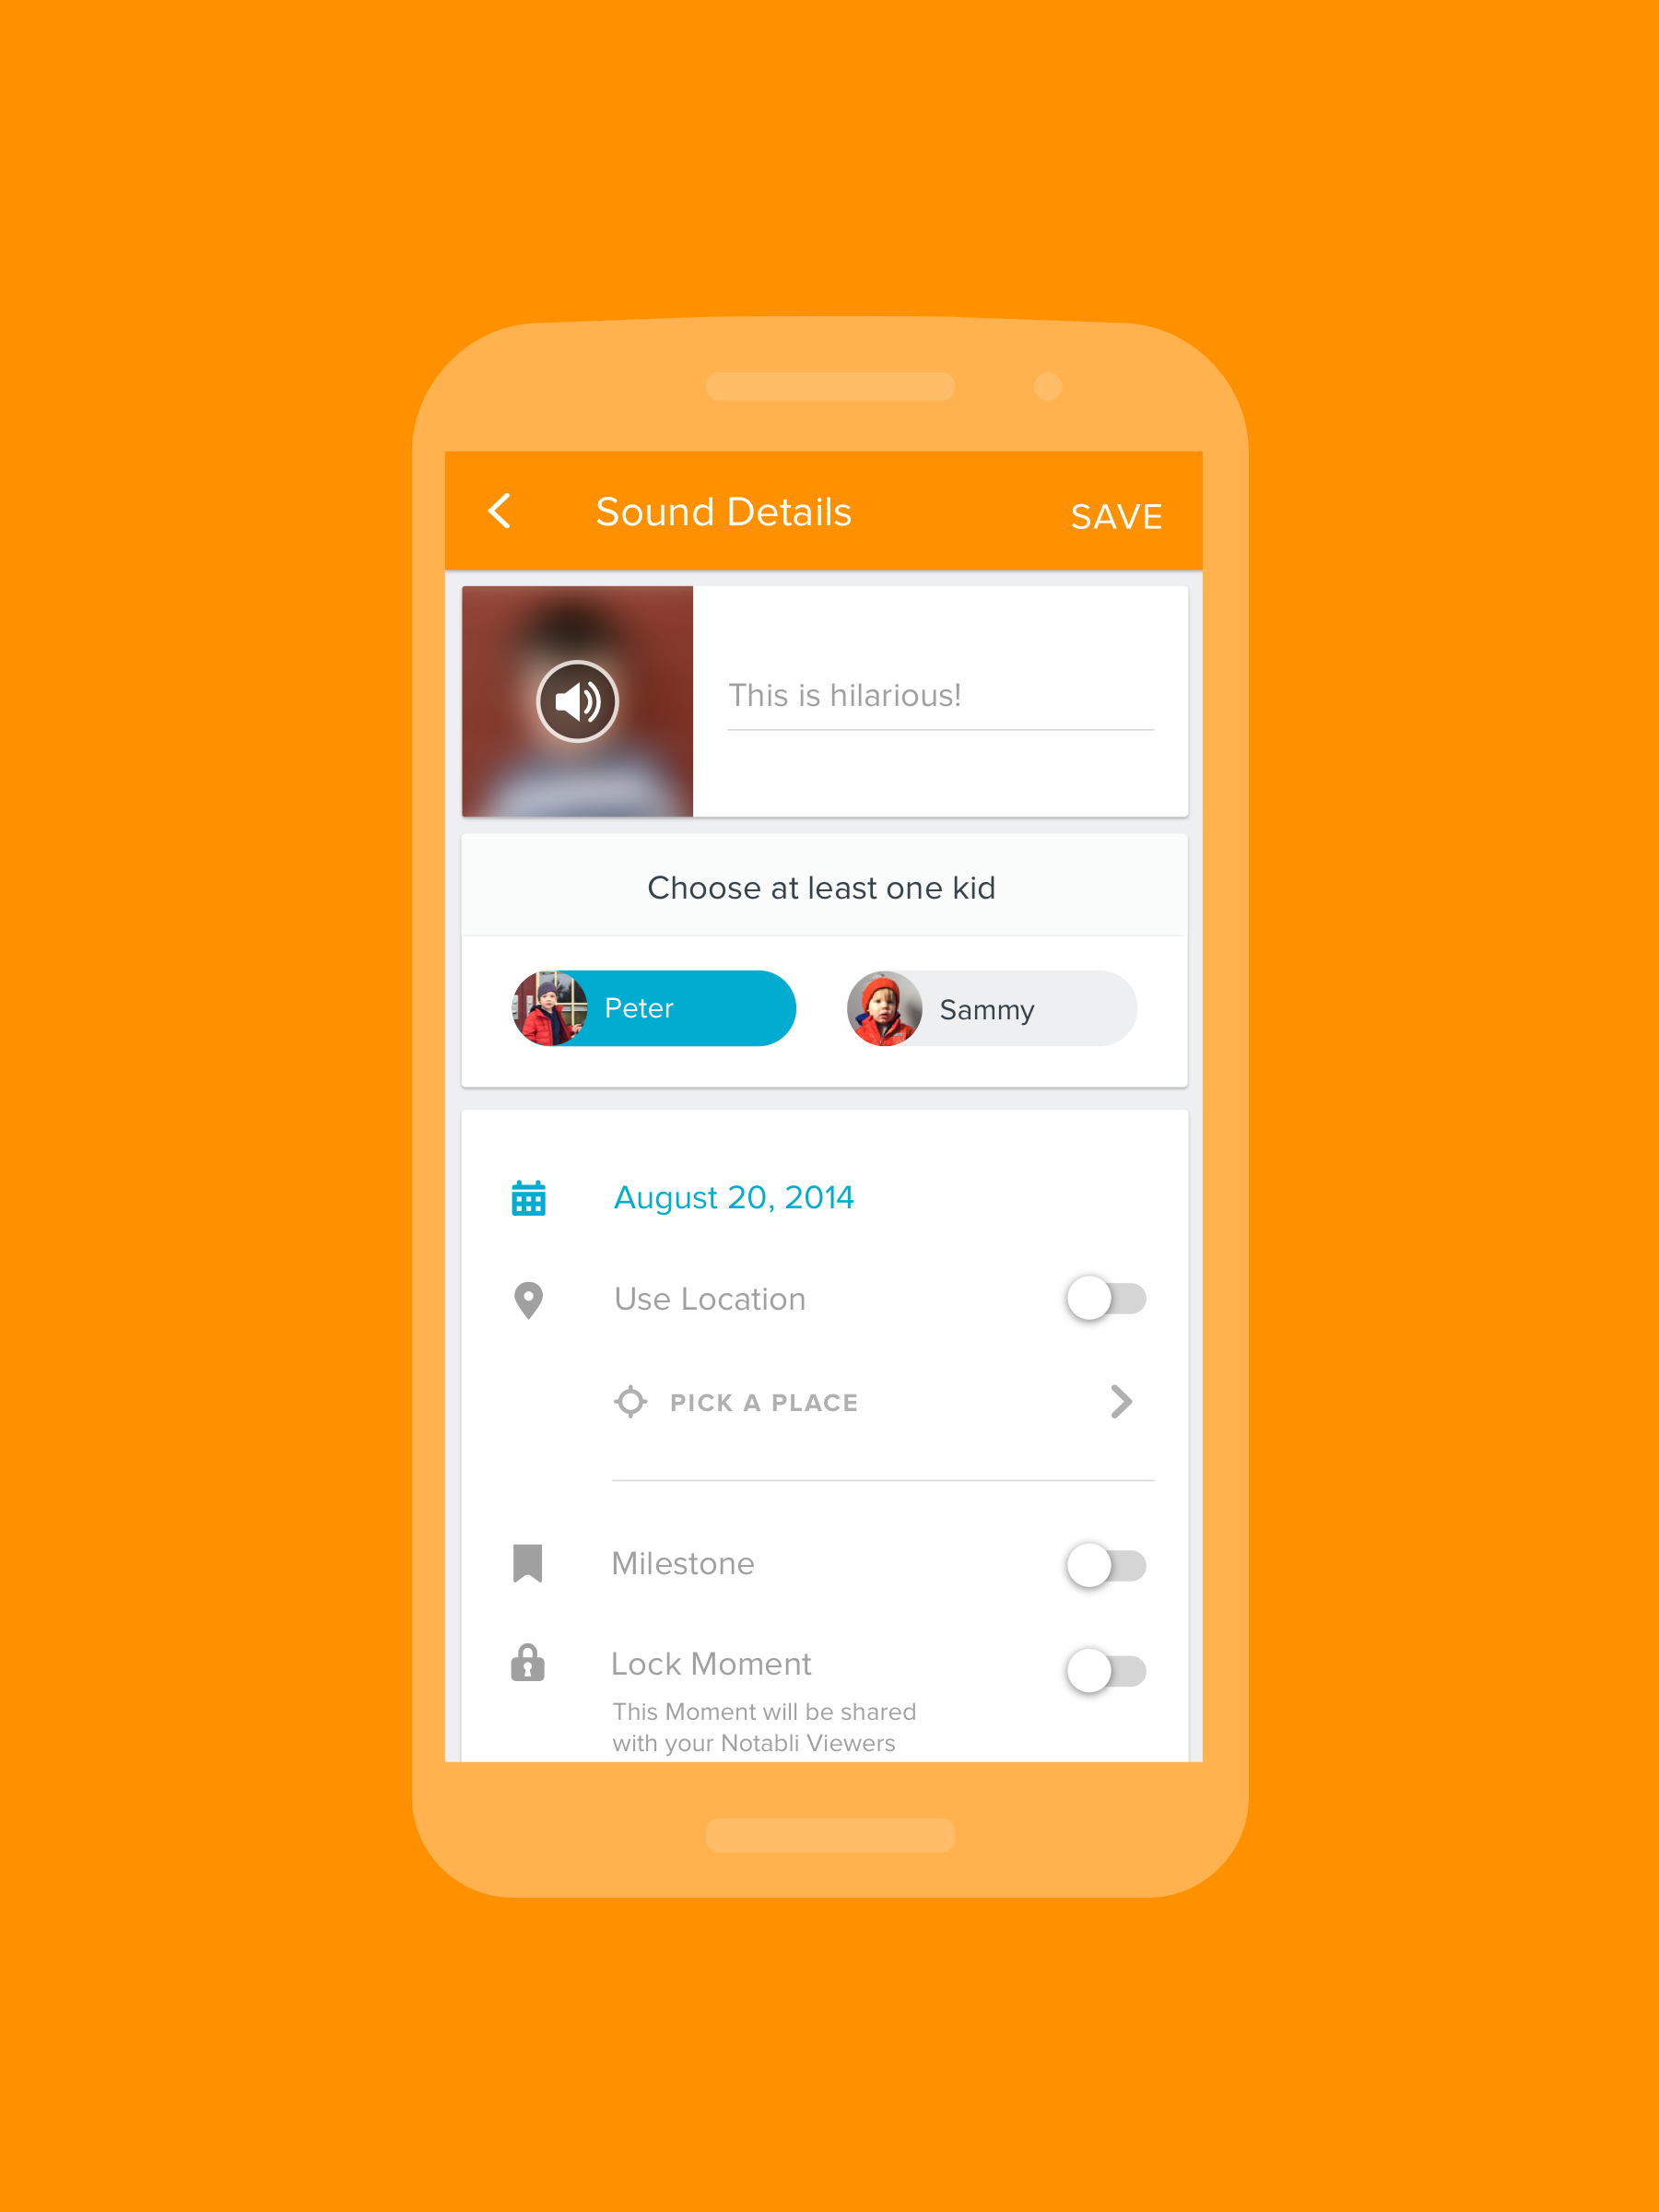 Notabli-Android-Details.png